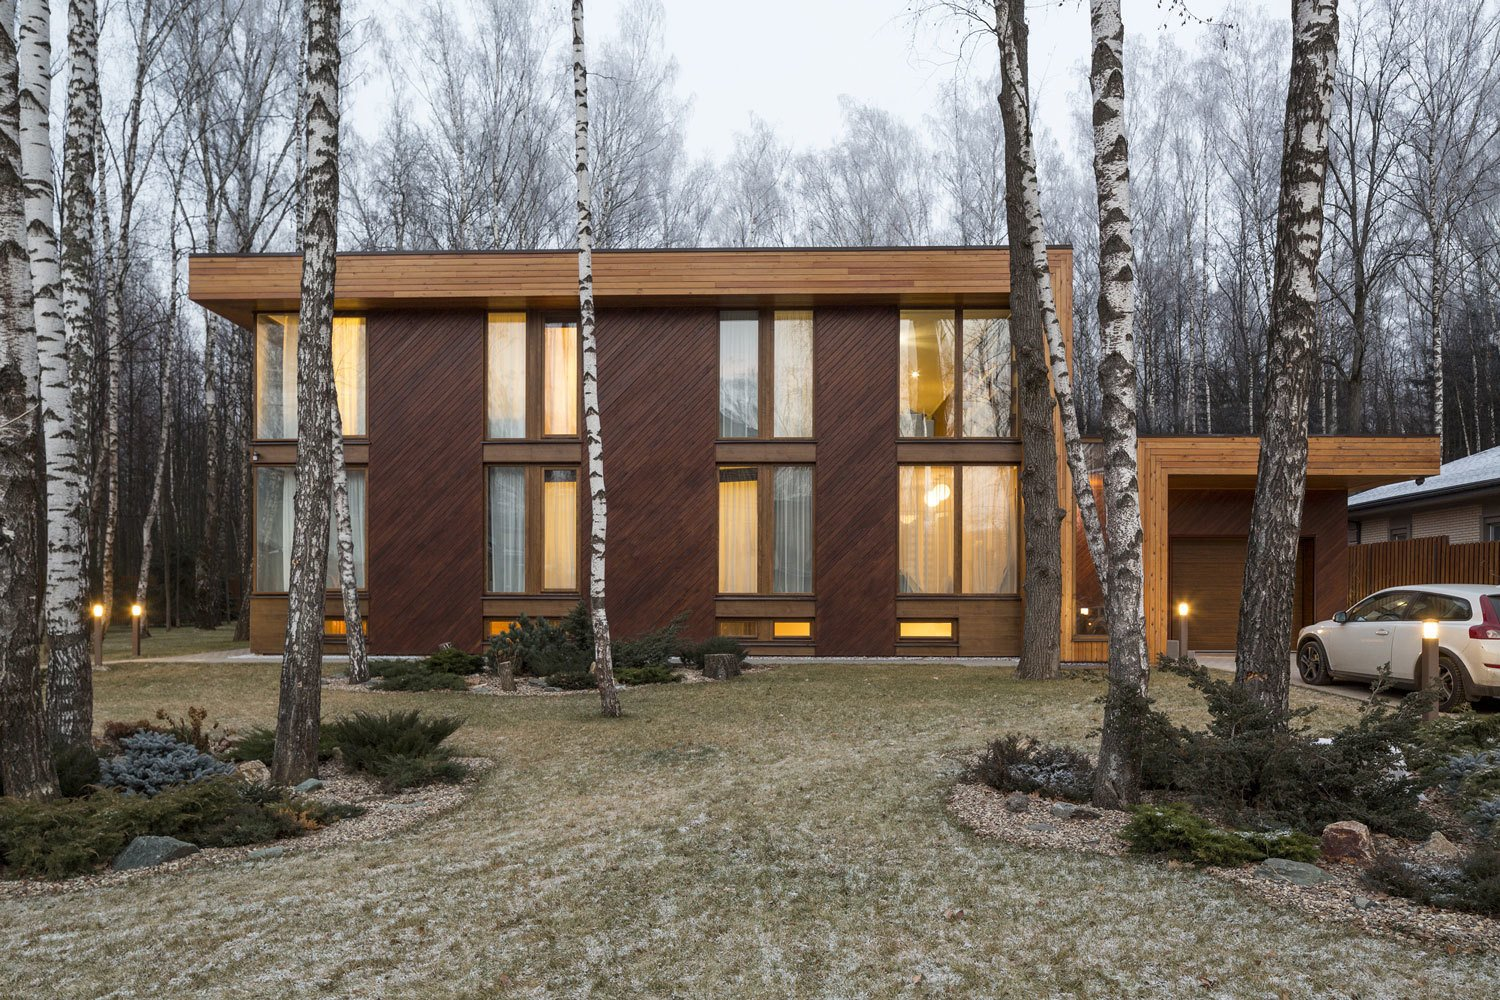 Though the house sits cozily at the back of a birch forest clearing, Zhidkov says no trees were cut during construction.